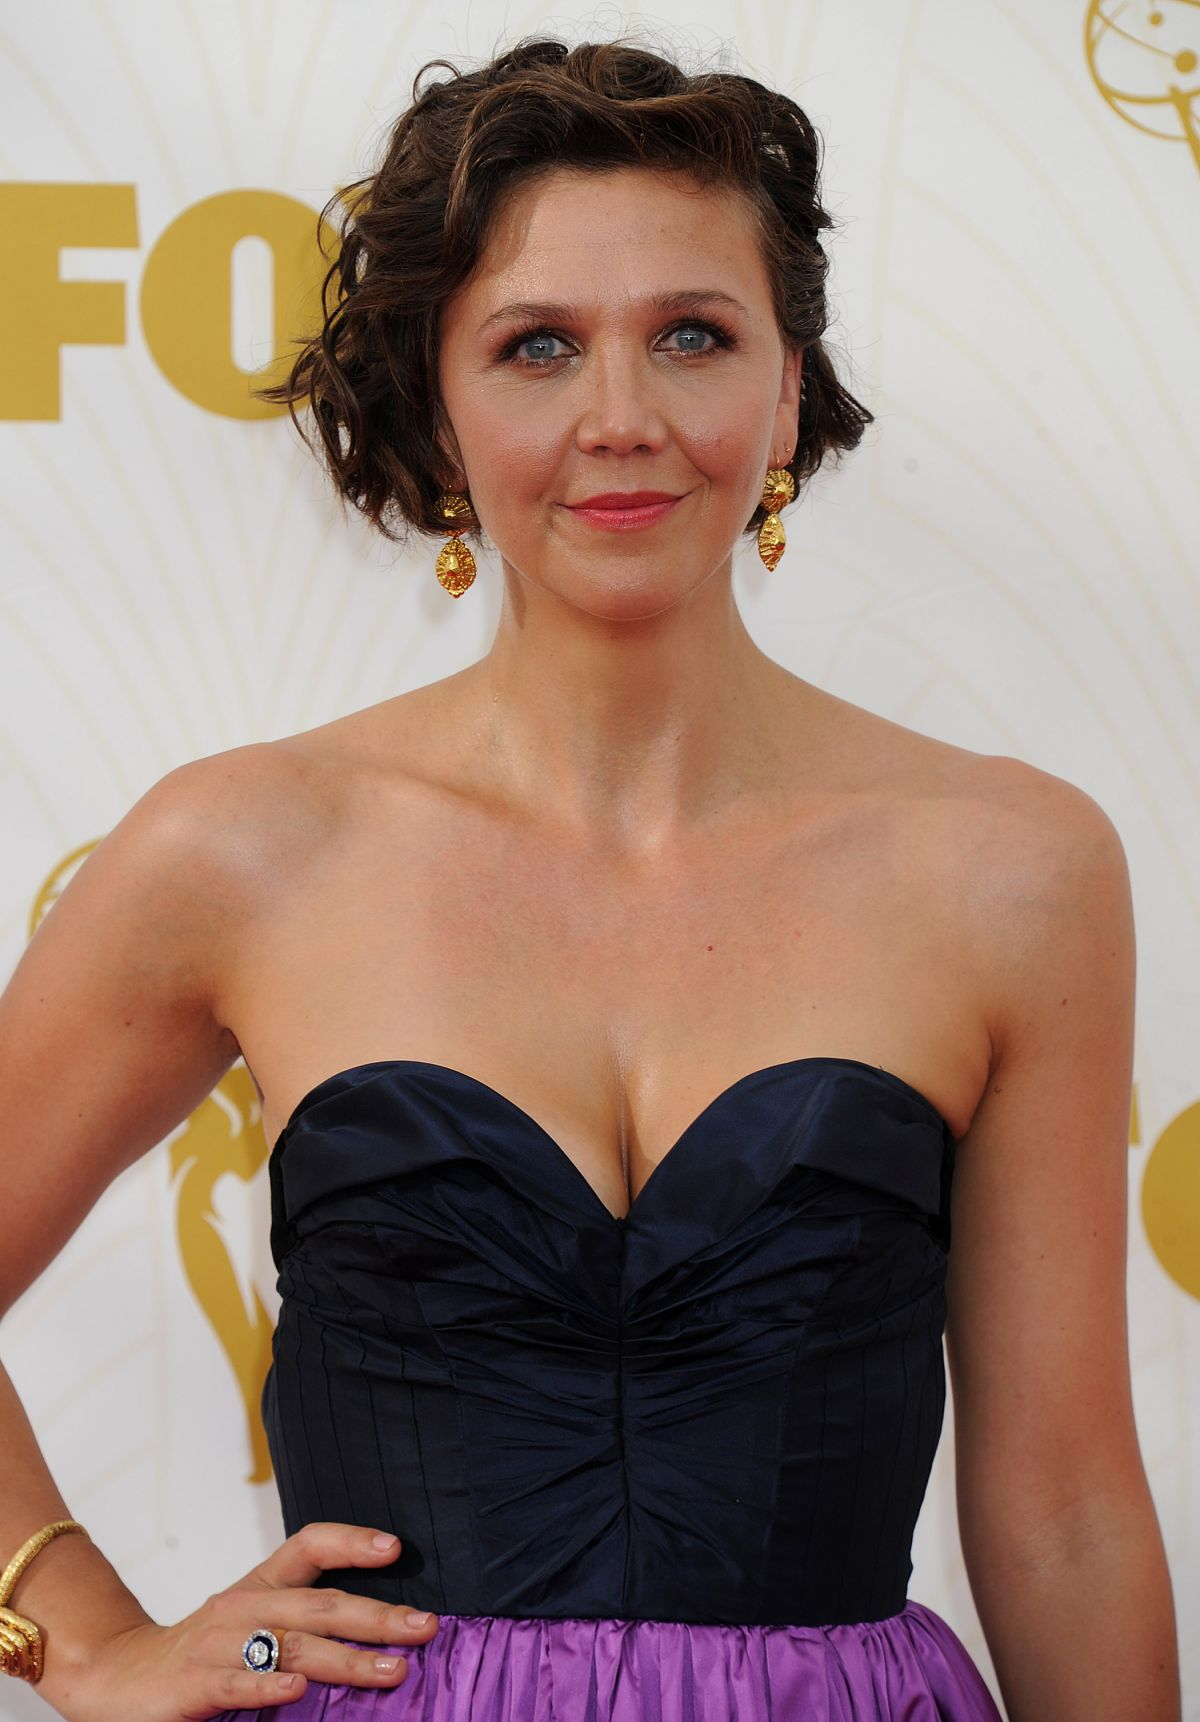 MAGGIE GYLLENHAAL at 2015 Emmy Awards in Los Angeles 09/20/2015